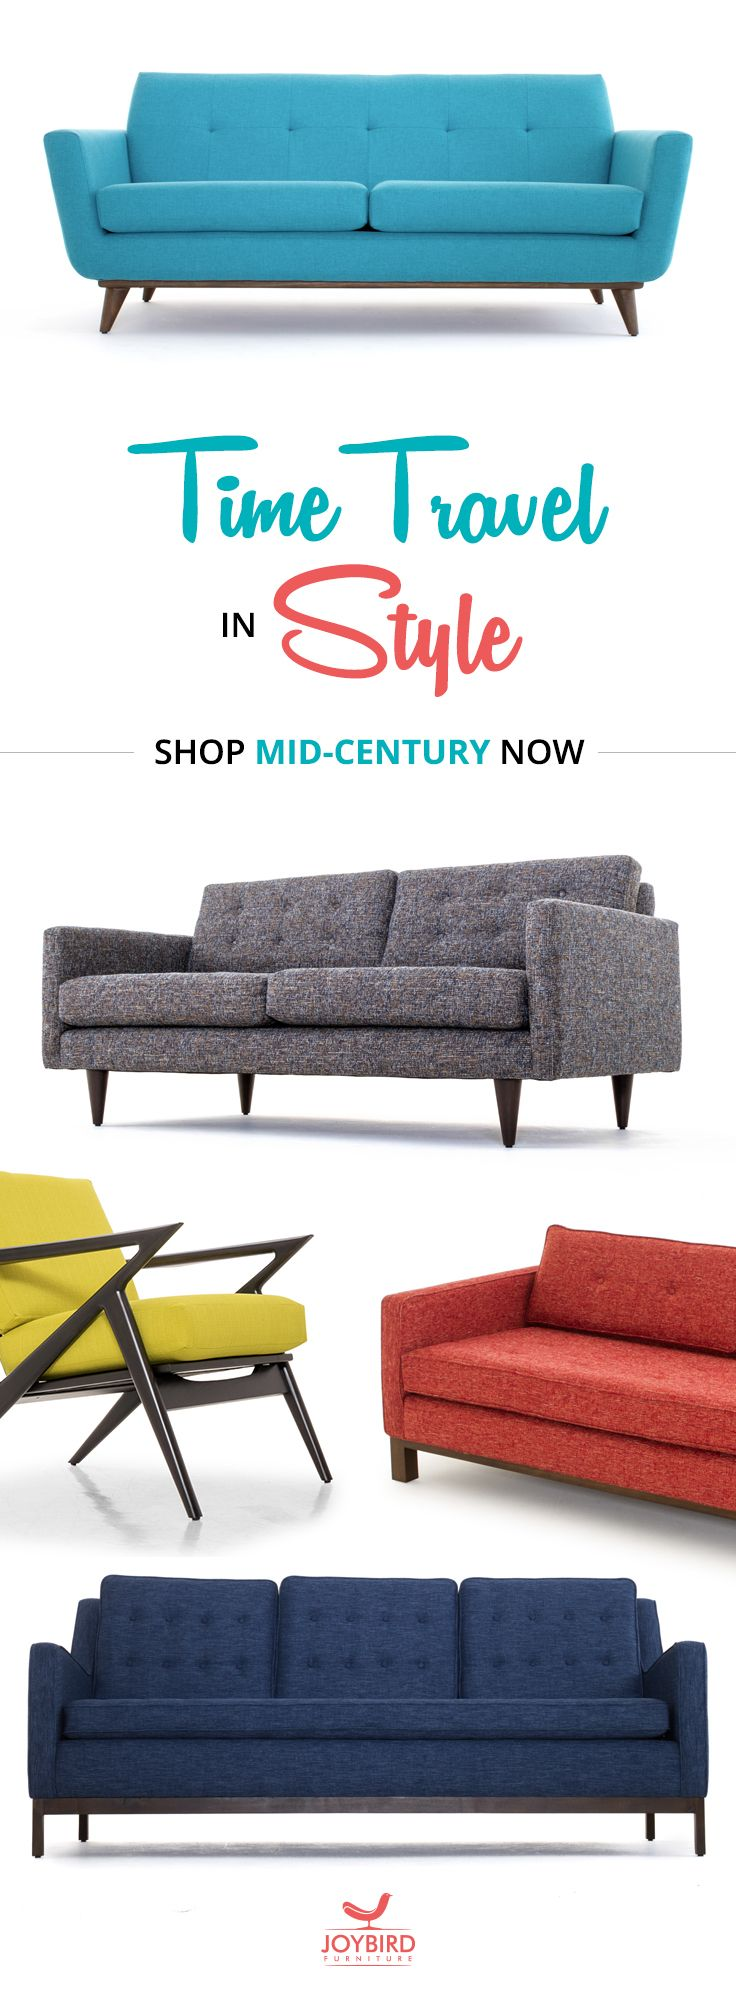 ideas about presidents day furniture sales on pinterest